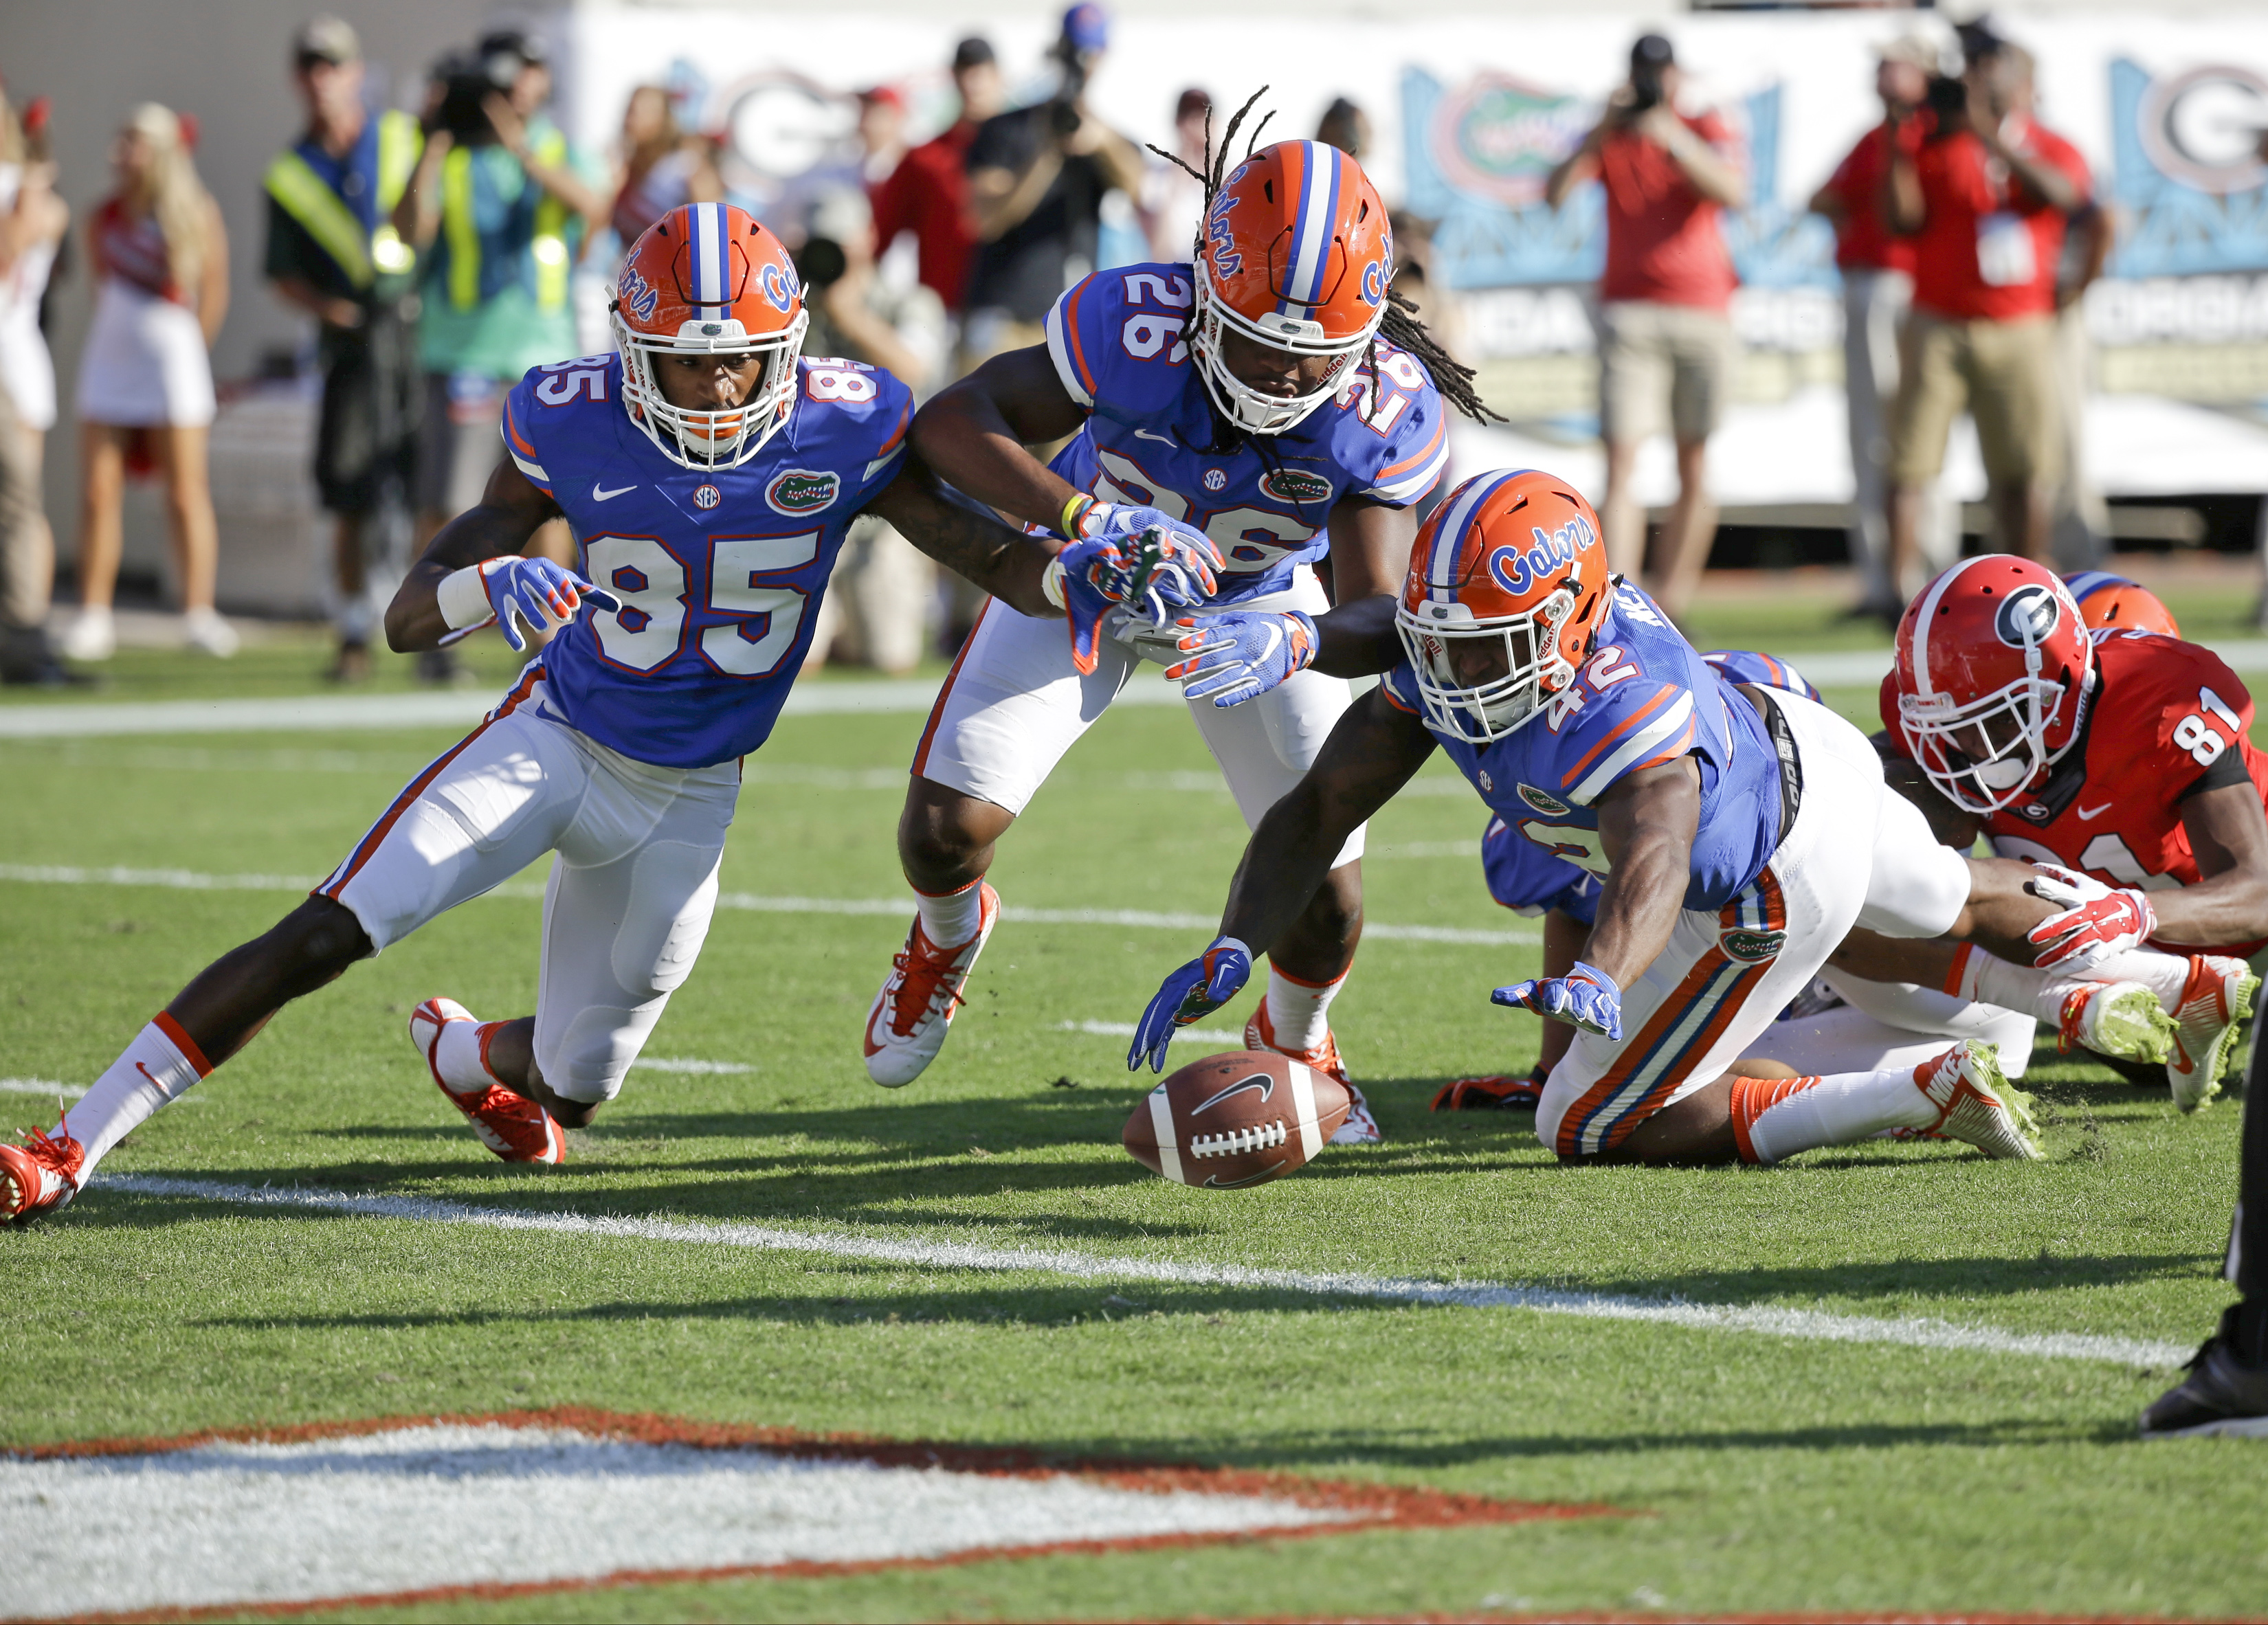 Florida players Chris Thompson (85), Marcell Harris (26) and Keanu Neal (42) go after a fumbled fair catch by Georgia's Reggie Davis (81) during the first half of an NCAA college football game  Saturday, Oct. 31, 2015, in Jacksonville, Fla.  Florida's Nic